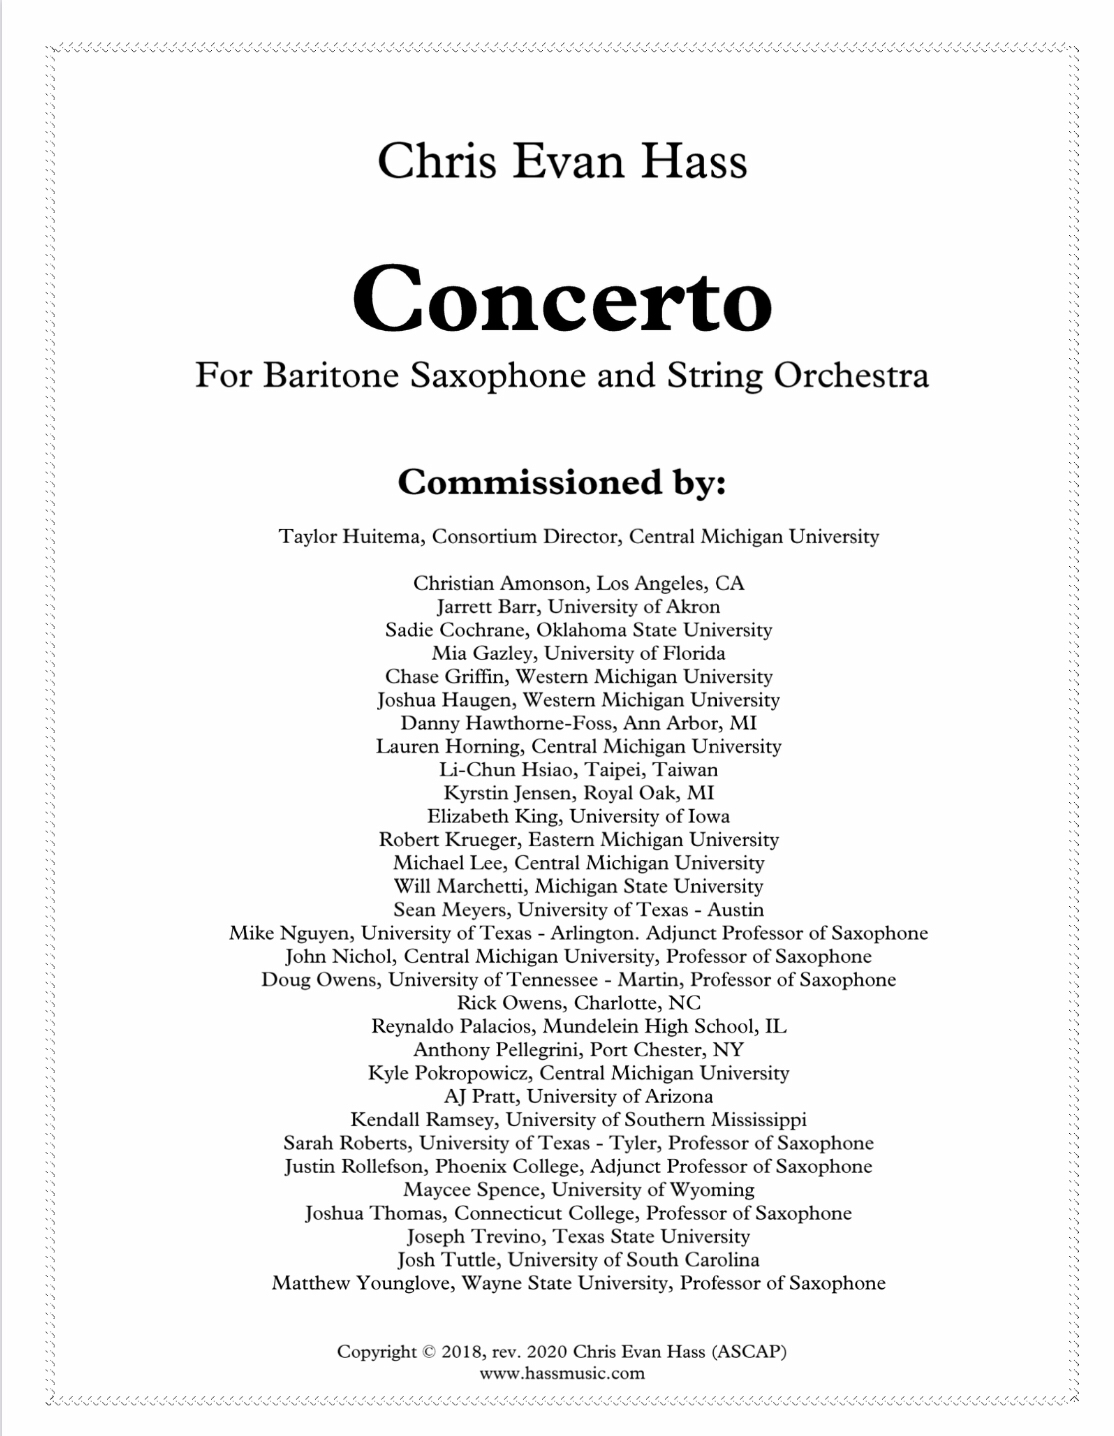 Concerto For Baritone Saxophone And String Orchestra by Chris Evan Hass